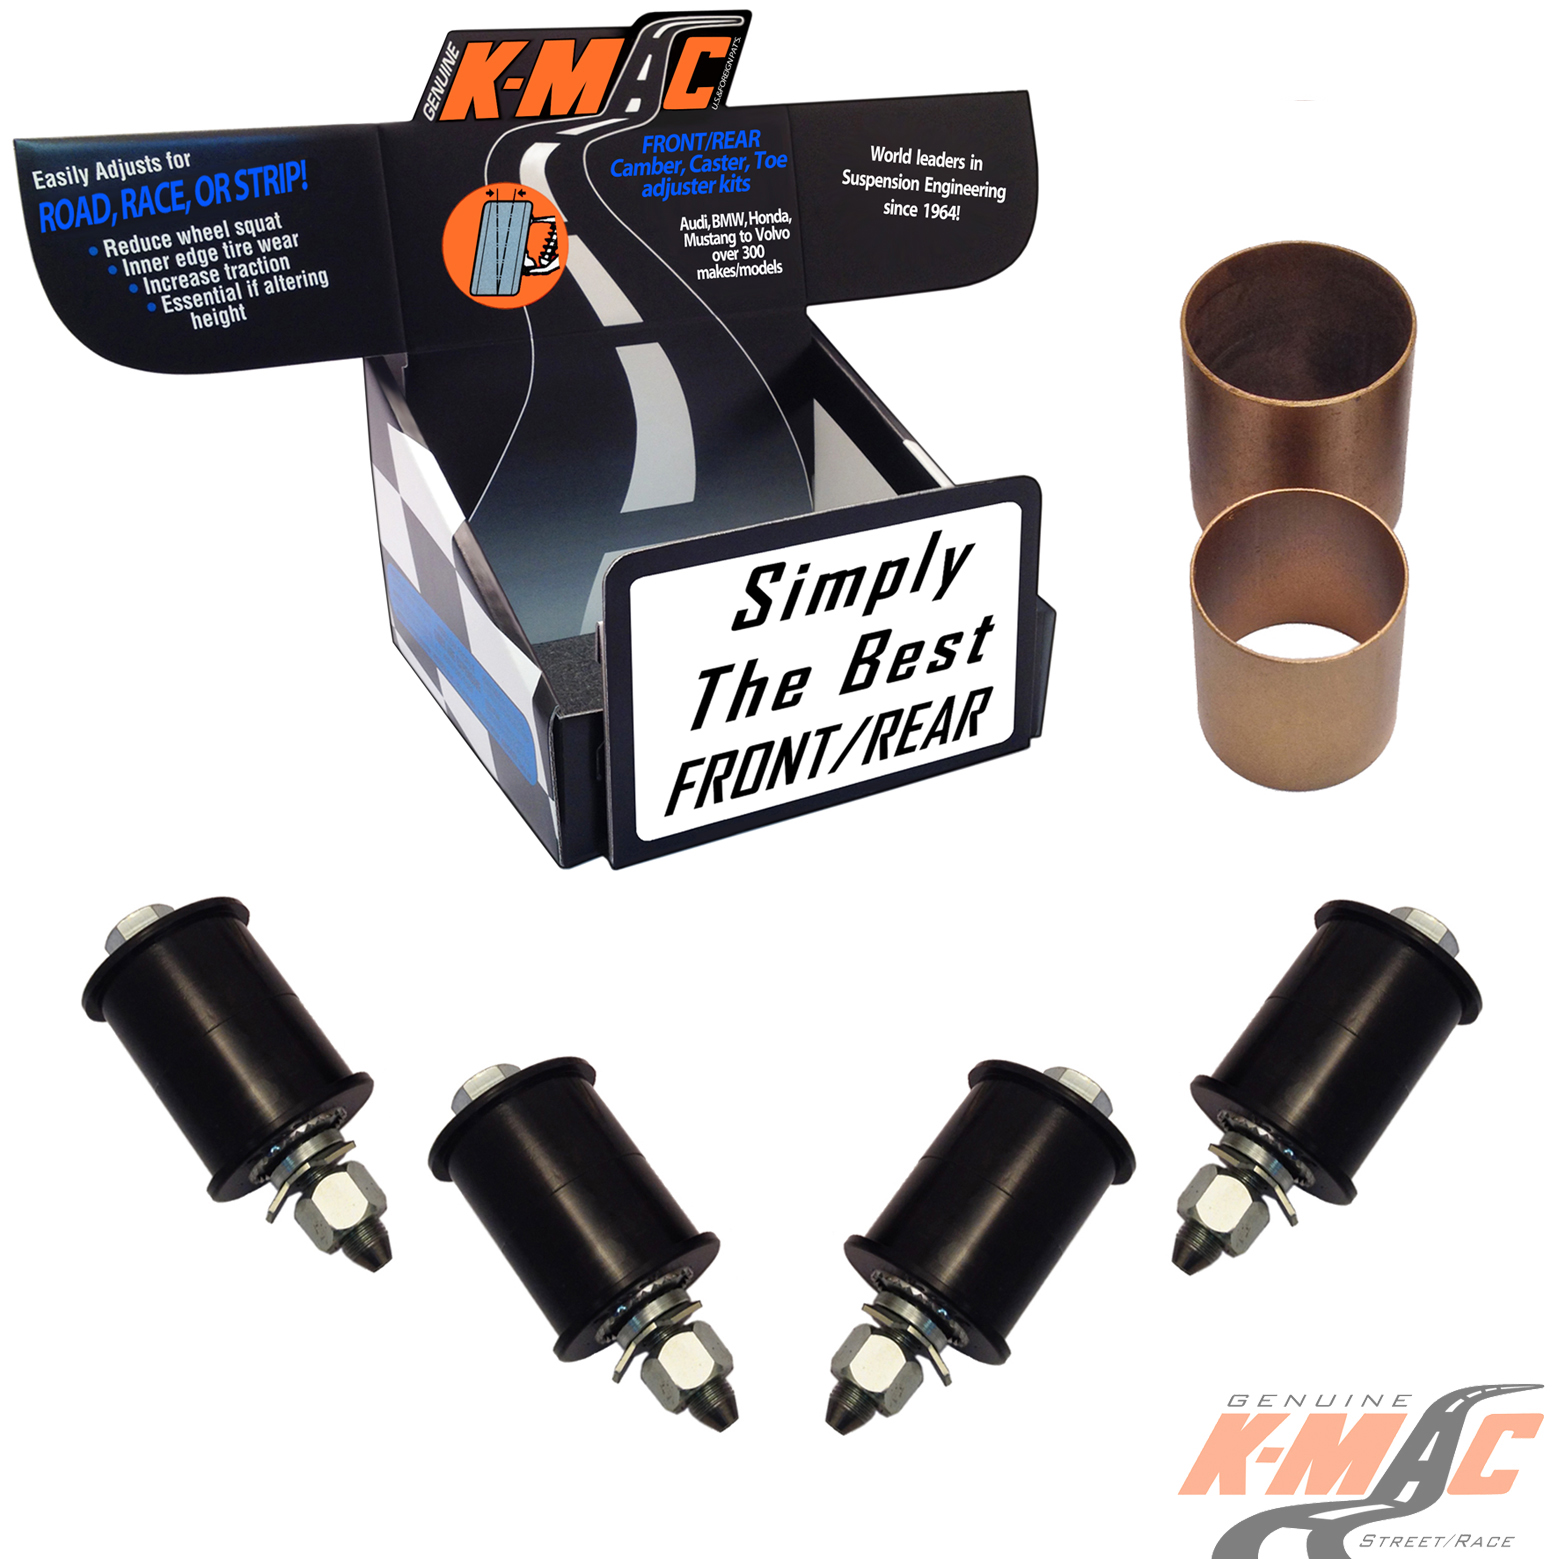 KMAC Mercedes Front Caster/Camber Kit 91-98 W140